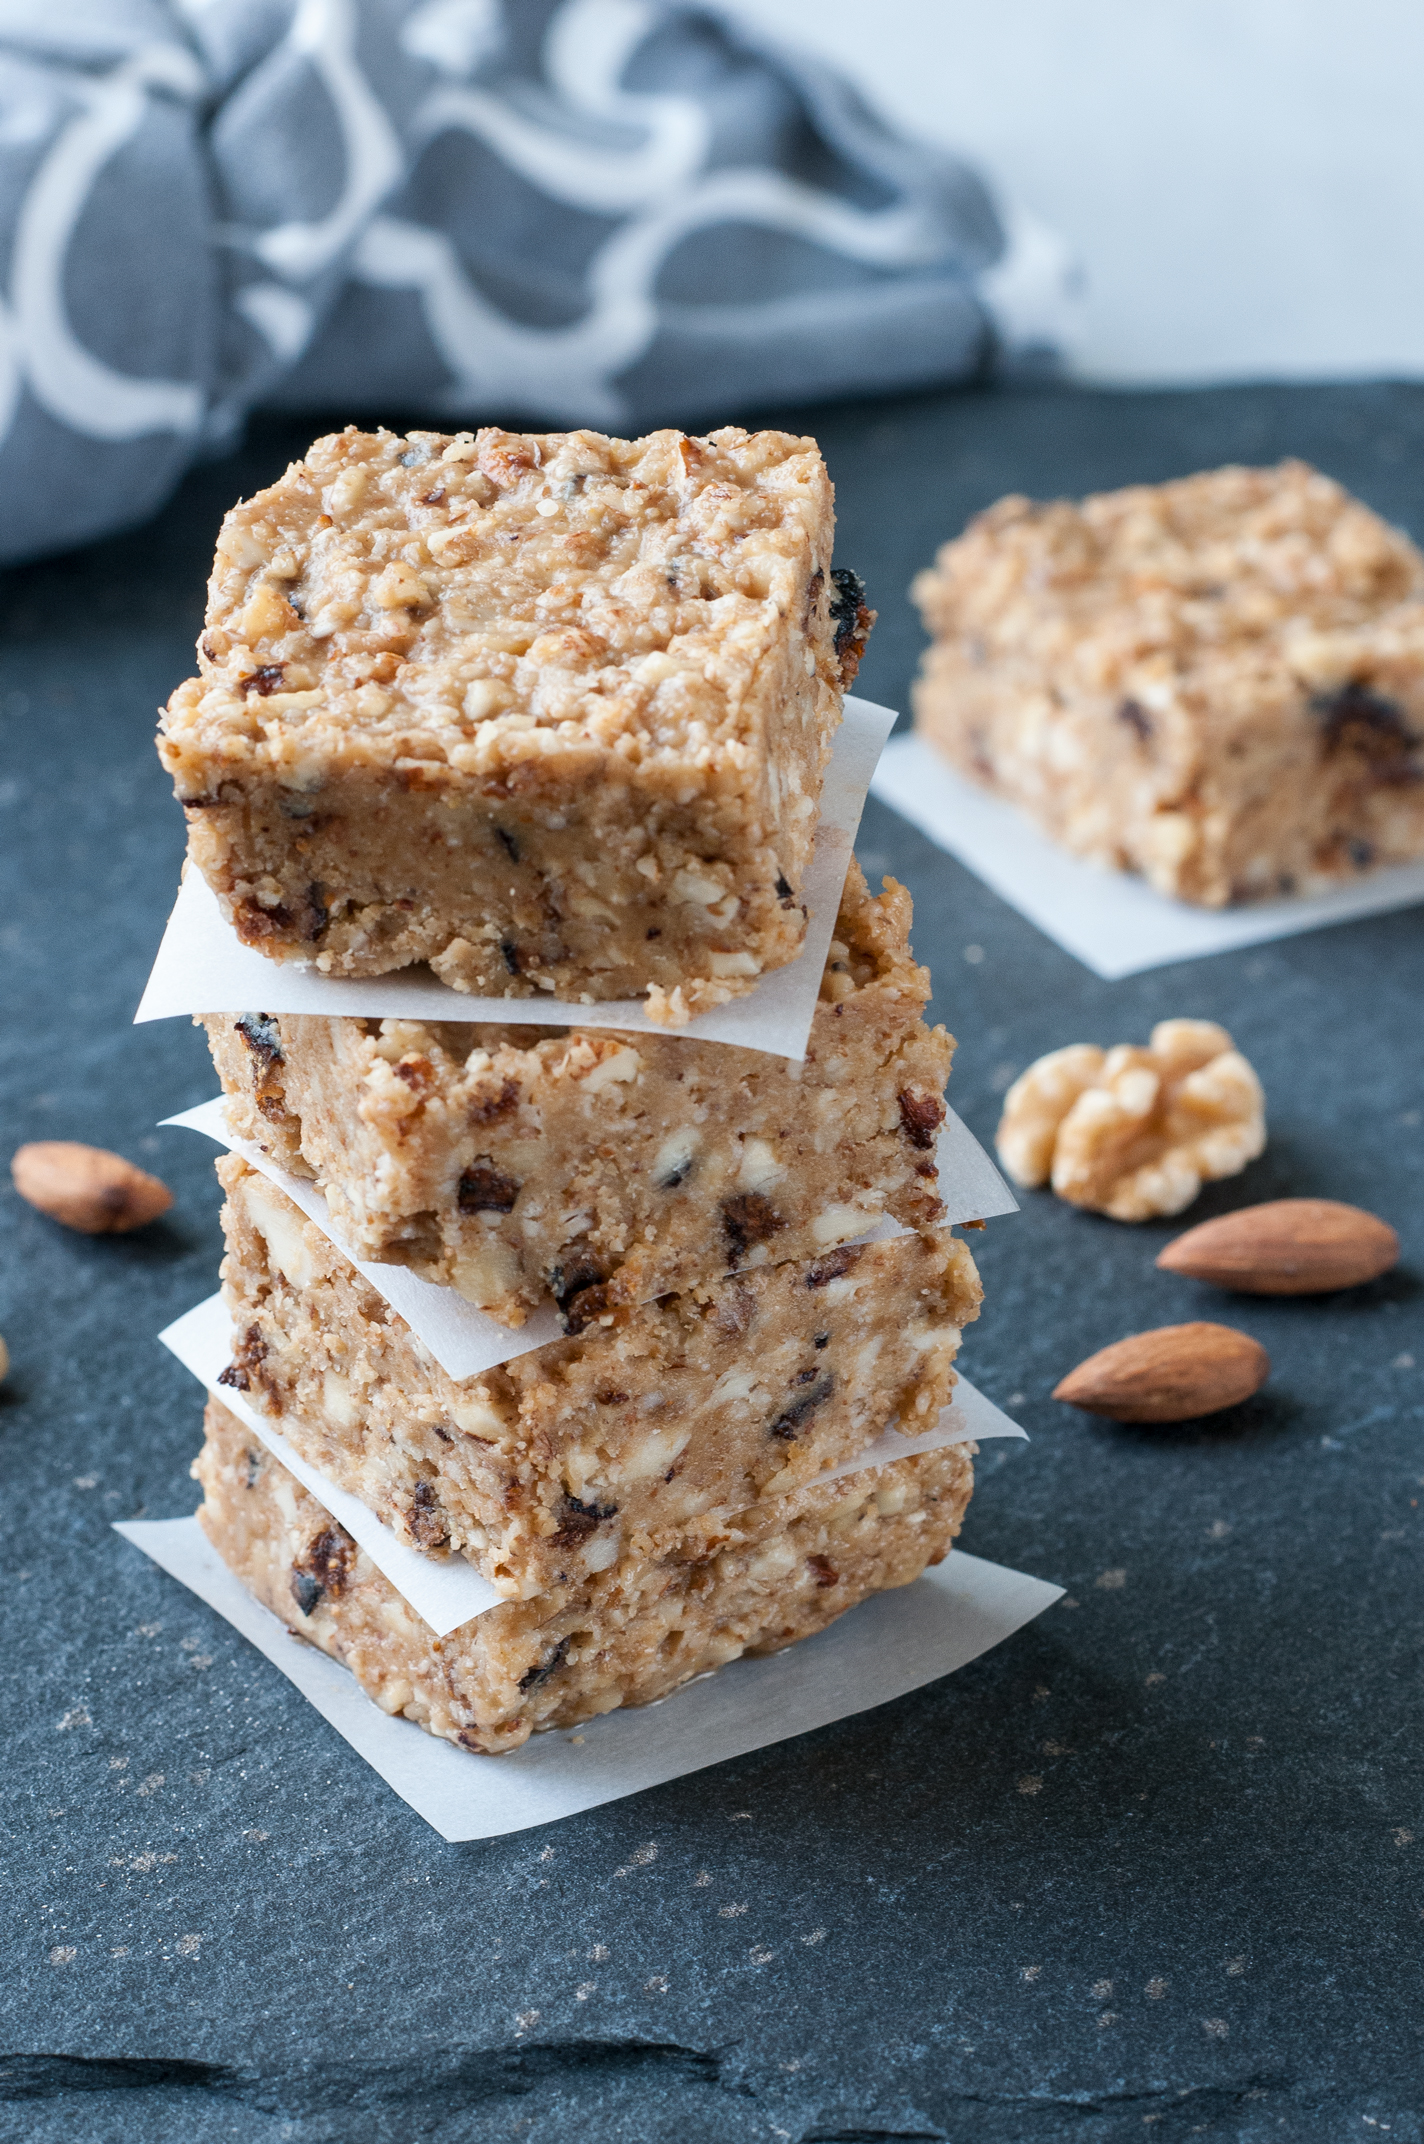 almond walnut gluten free dairy free protein bar recipe